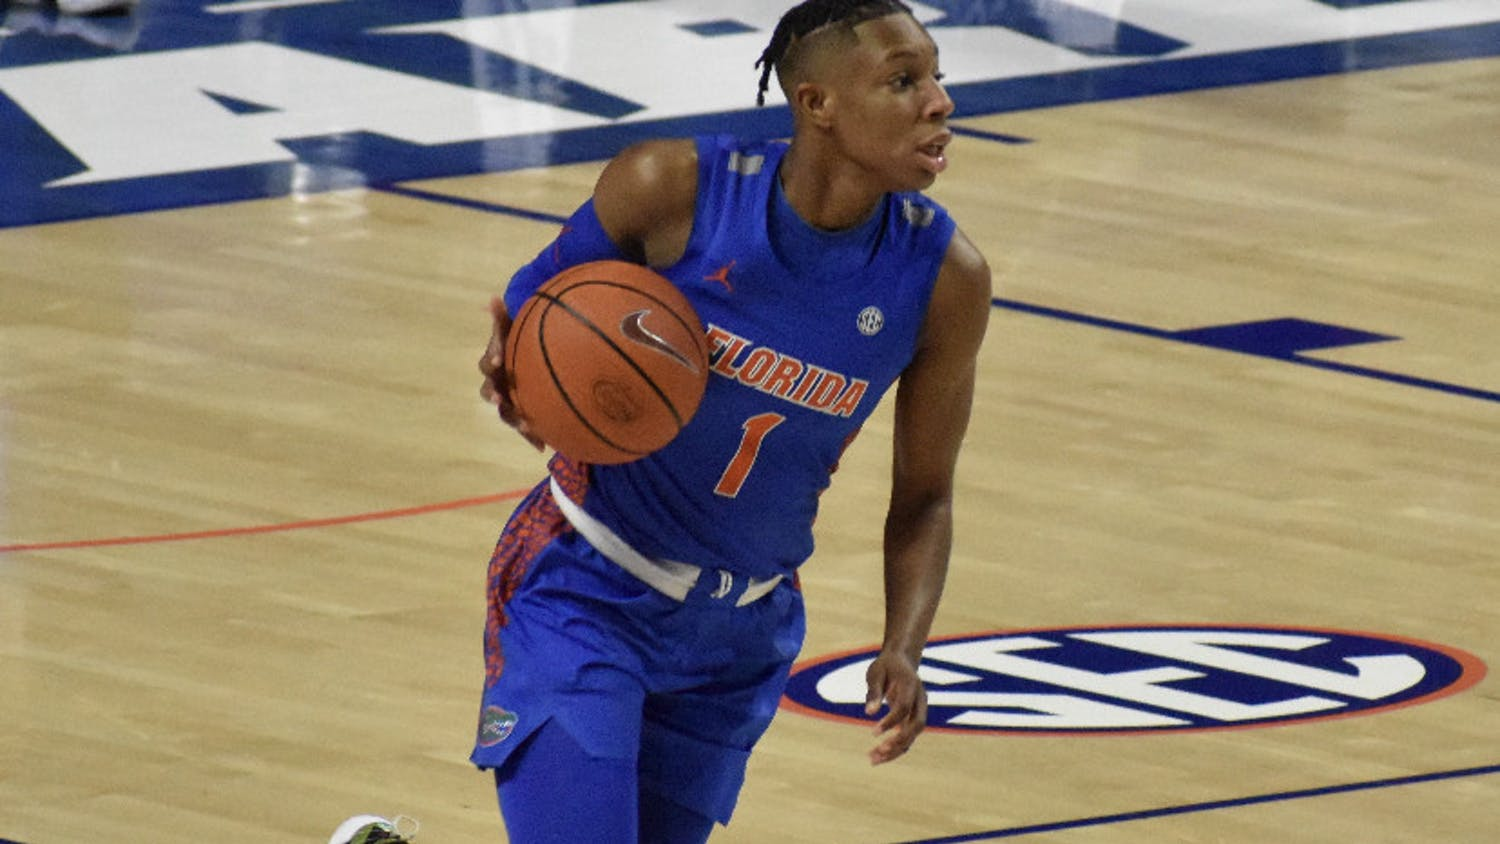 Kiara Smith dribbles in a 77-70 loss against  Alabama on Feb. 18. The 5-foot-10-inch redshirt senior dropped a career-high 36 points Thursday in a season-ending loss against Kentucky.